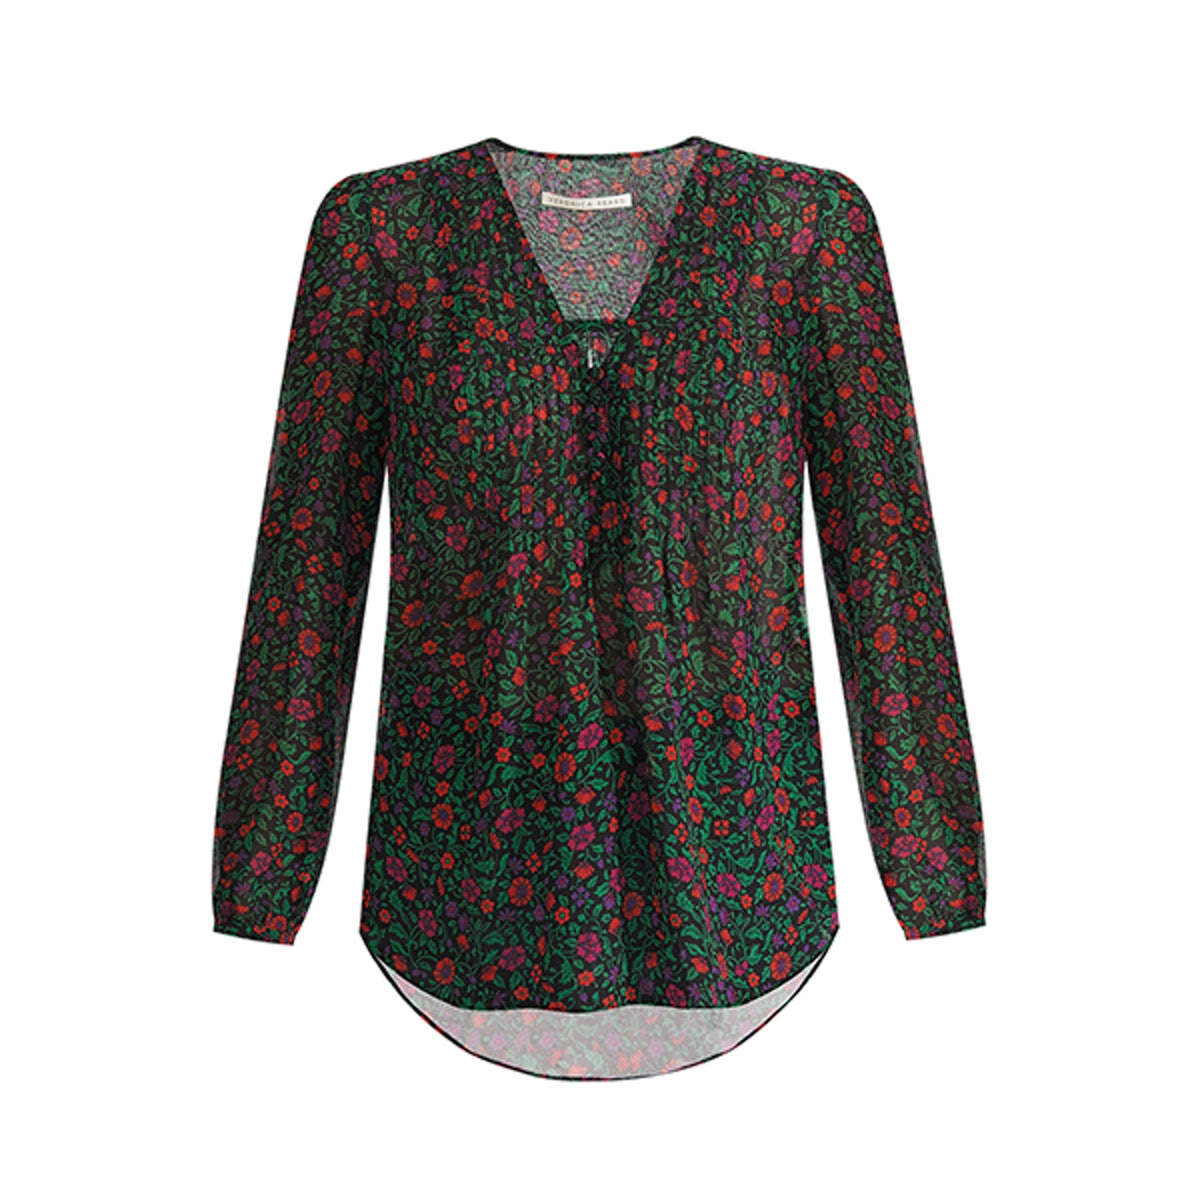 Lowell Blouse